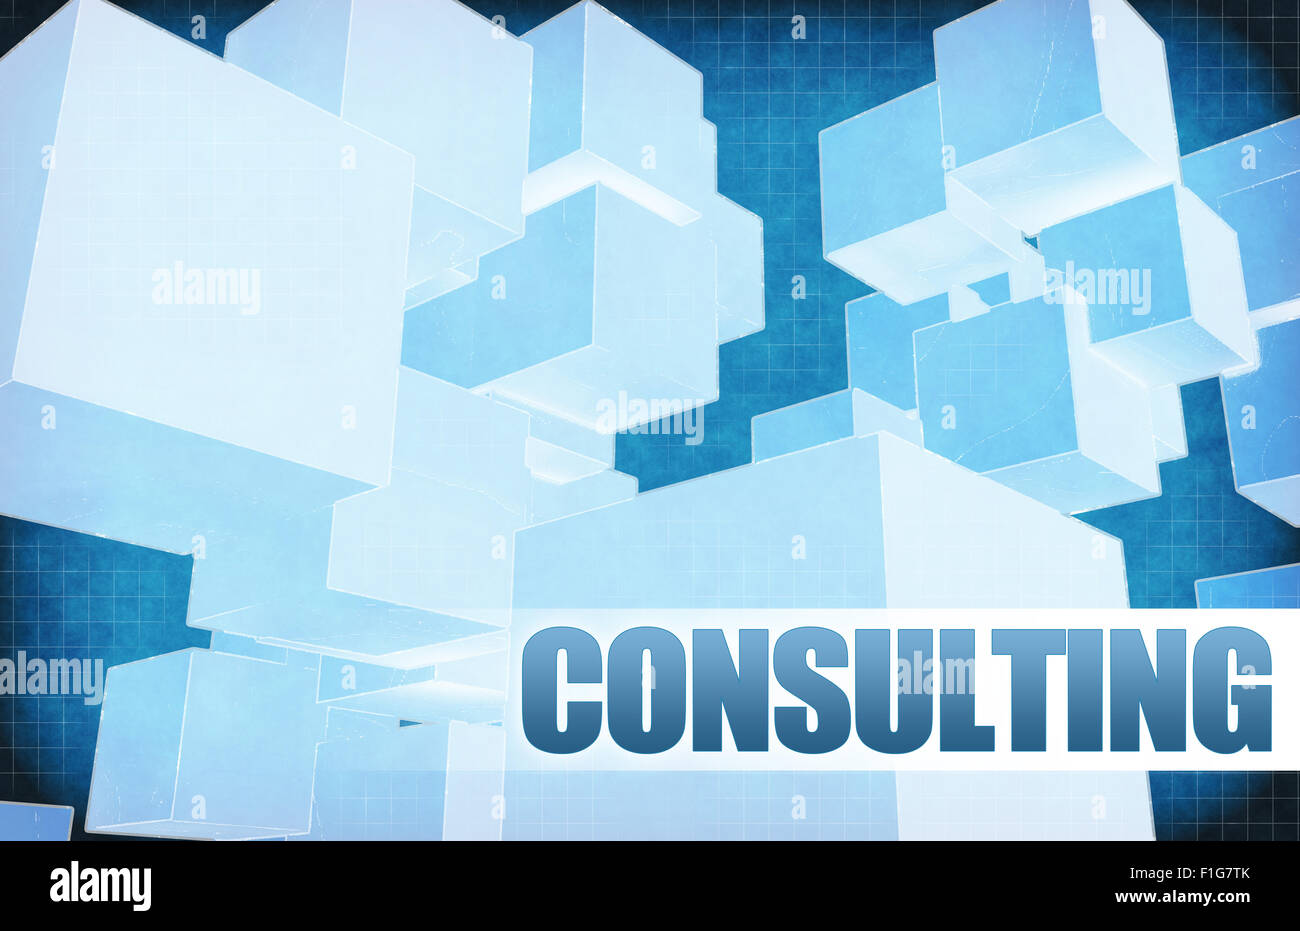 Consulting on Futuristic Abstract for Presentation Slide - Stock Image